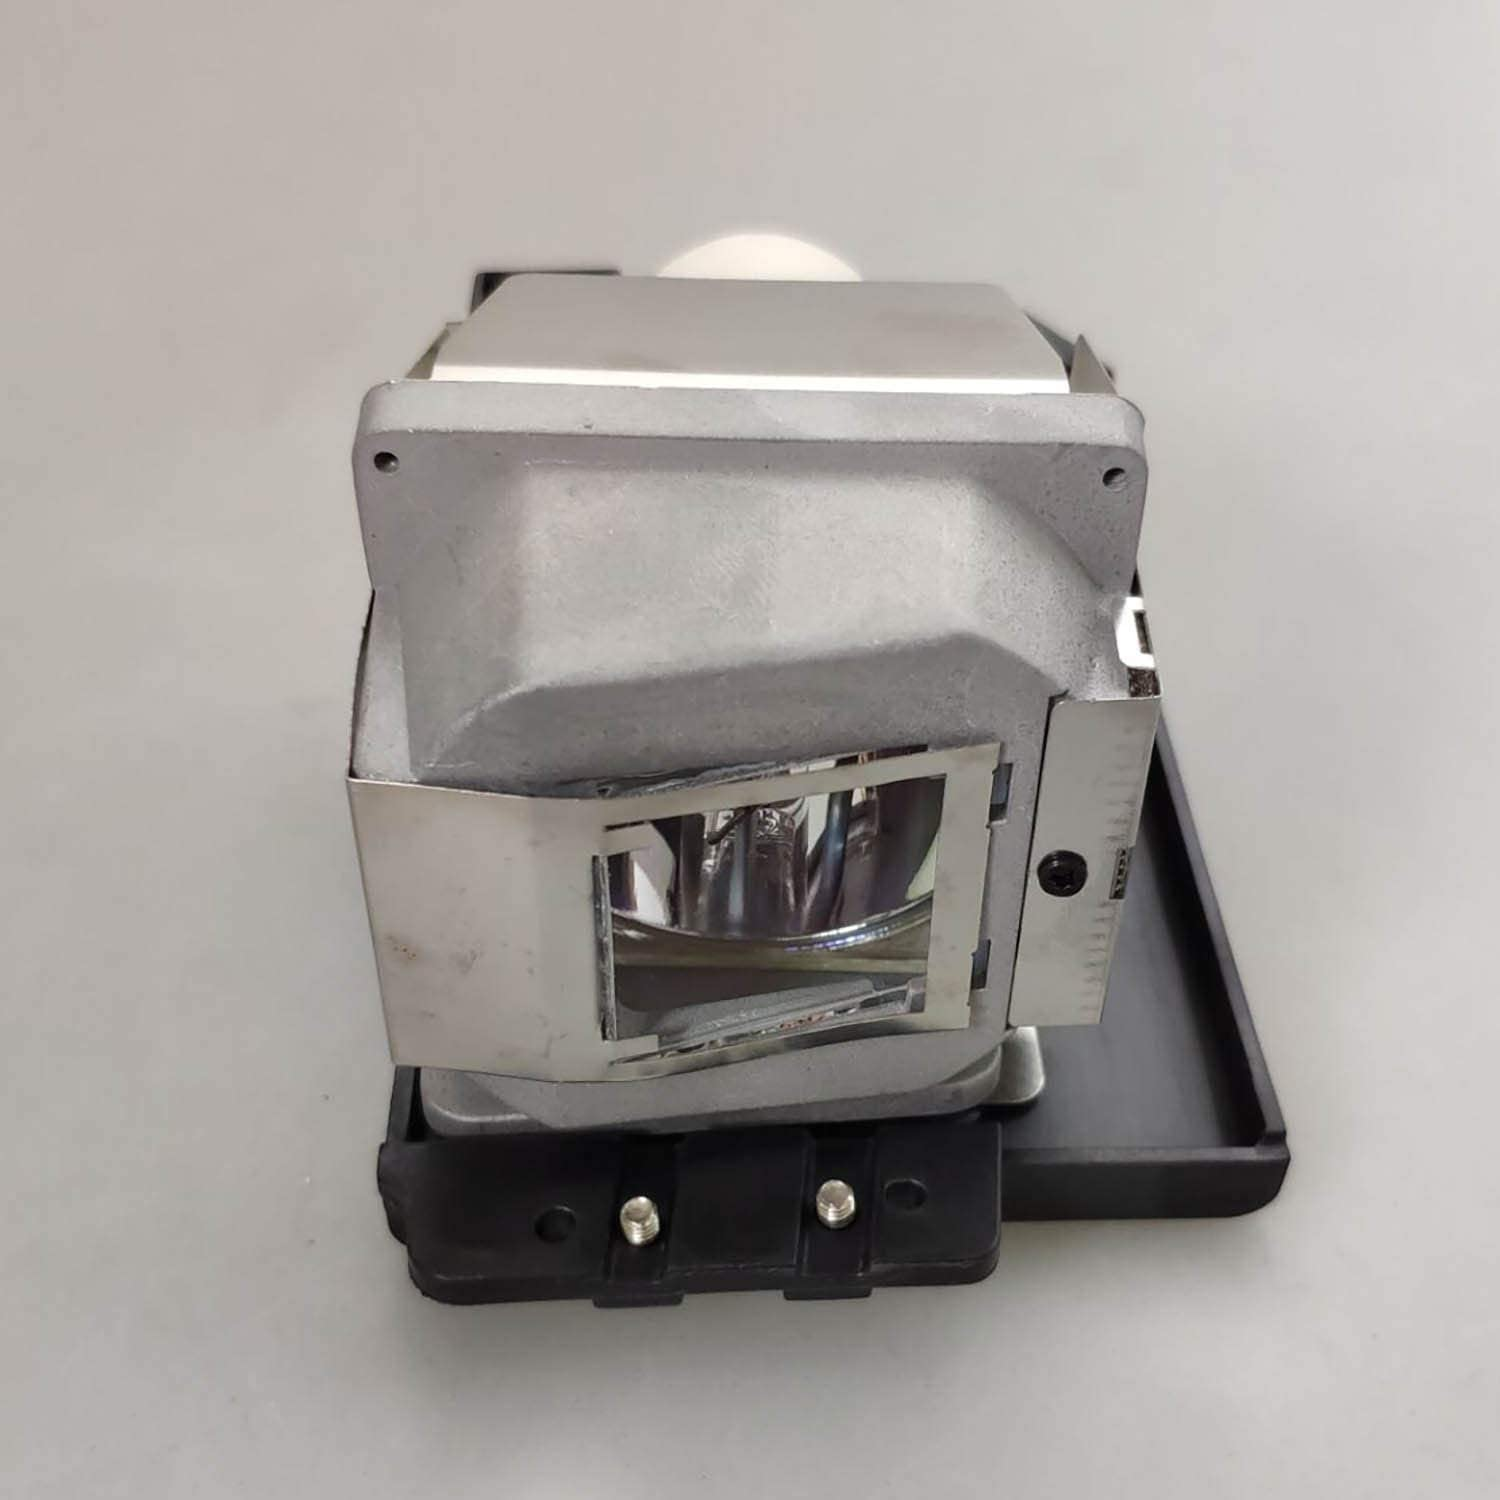 Replacement for Lti Lti-260962 Lamp /& Housing Projector Tv Lamp Bulb by Technical Precision